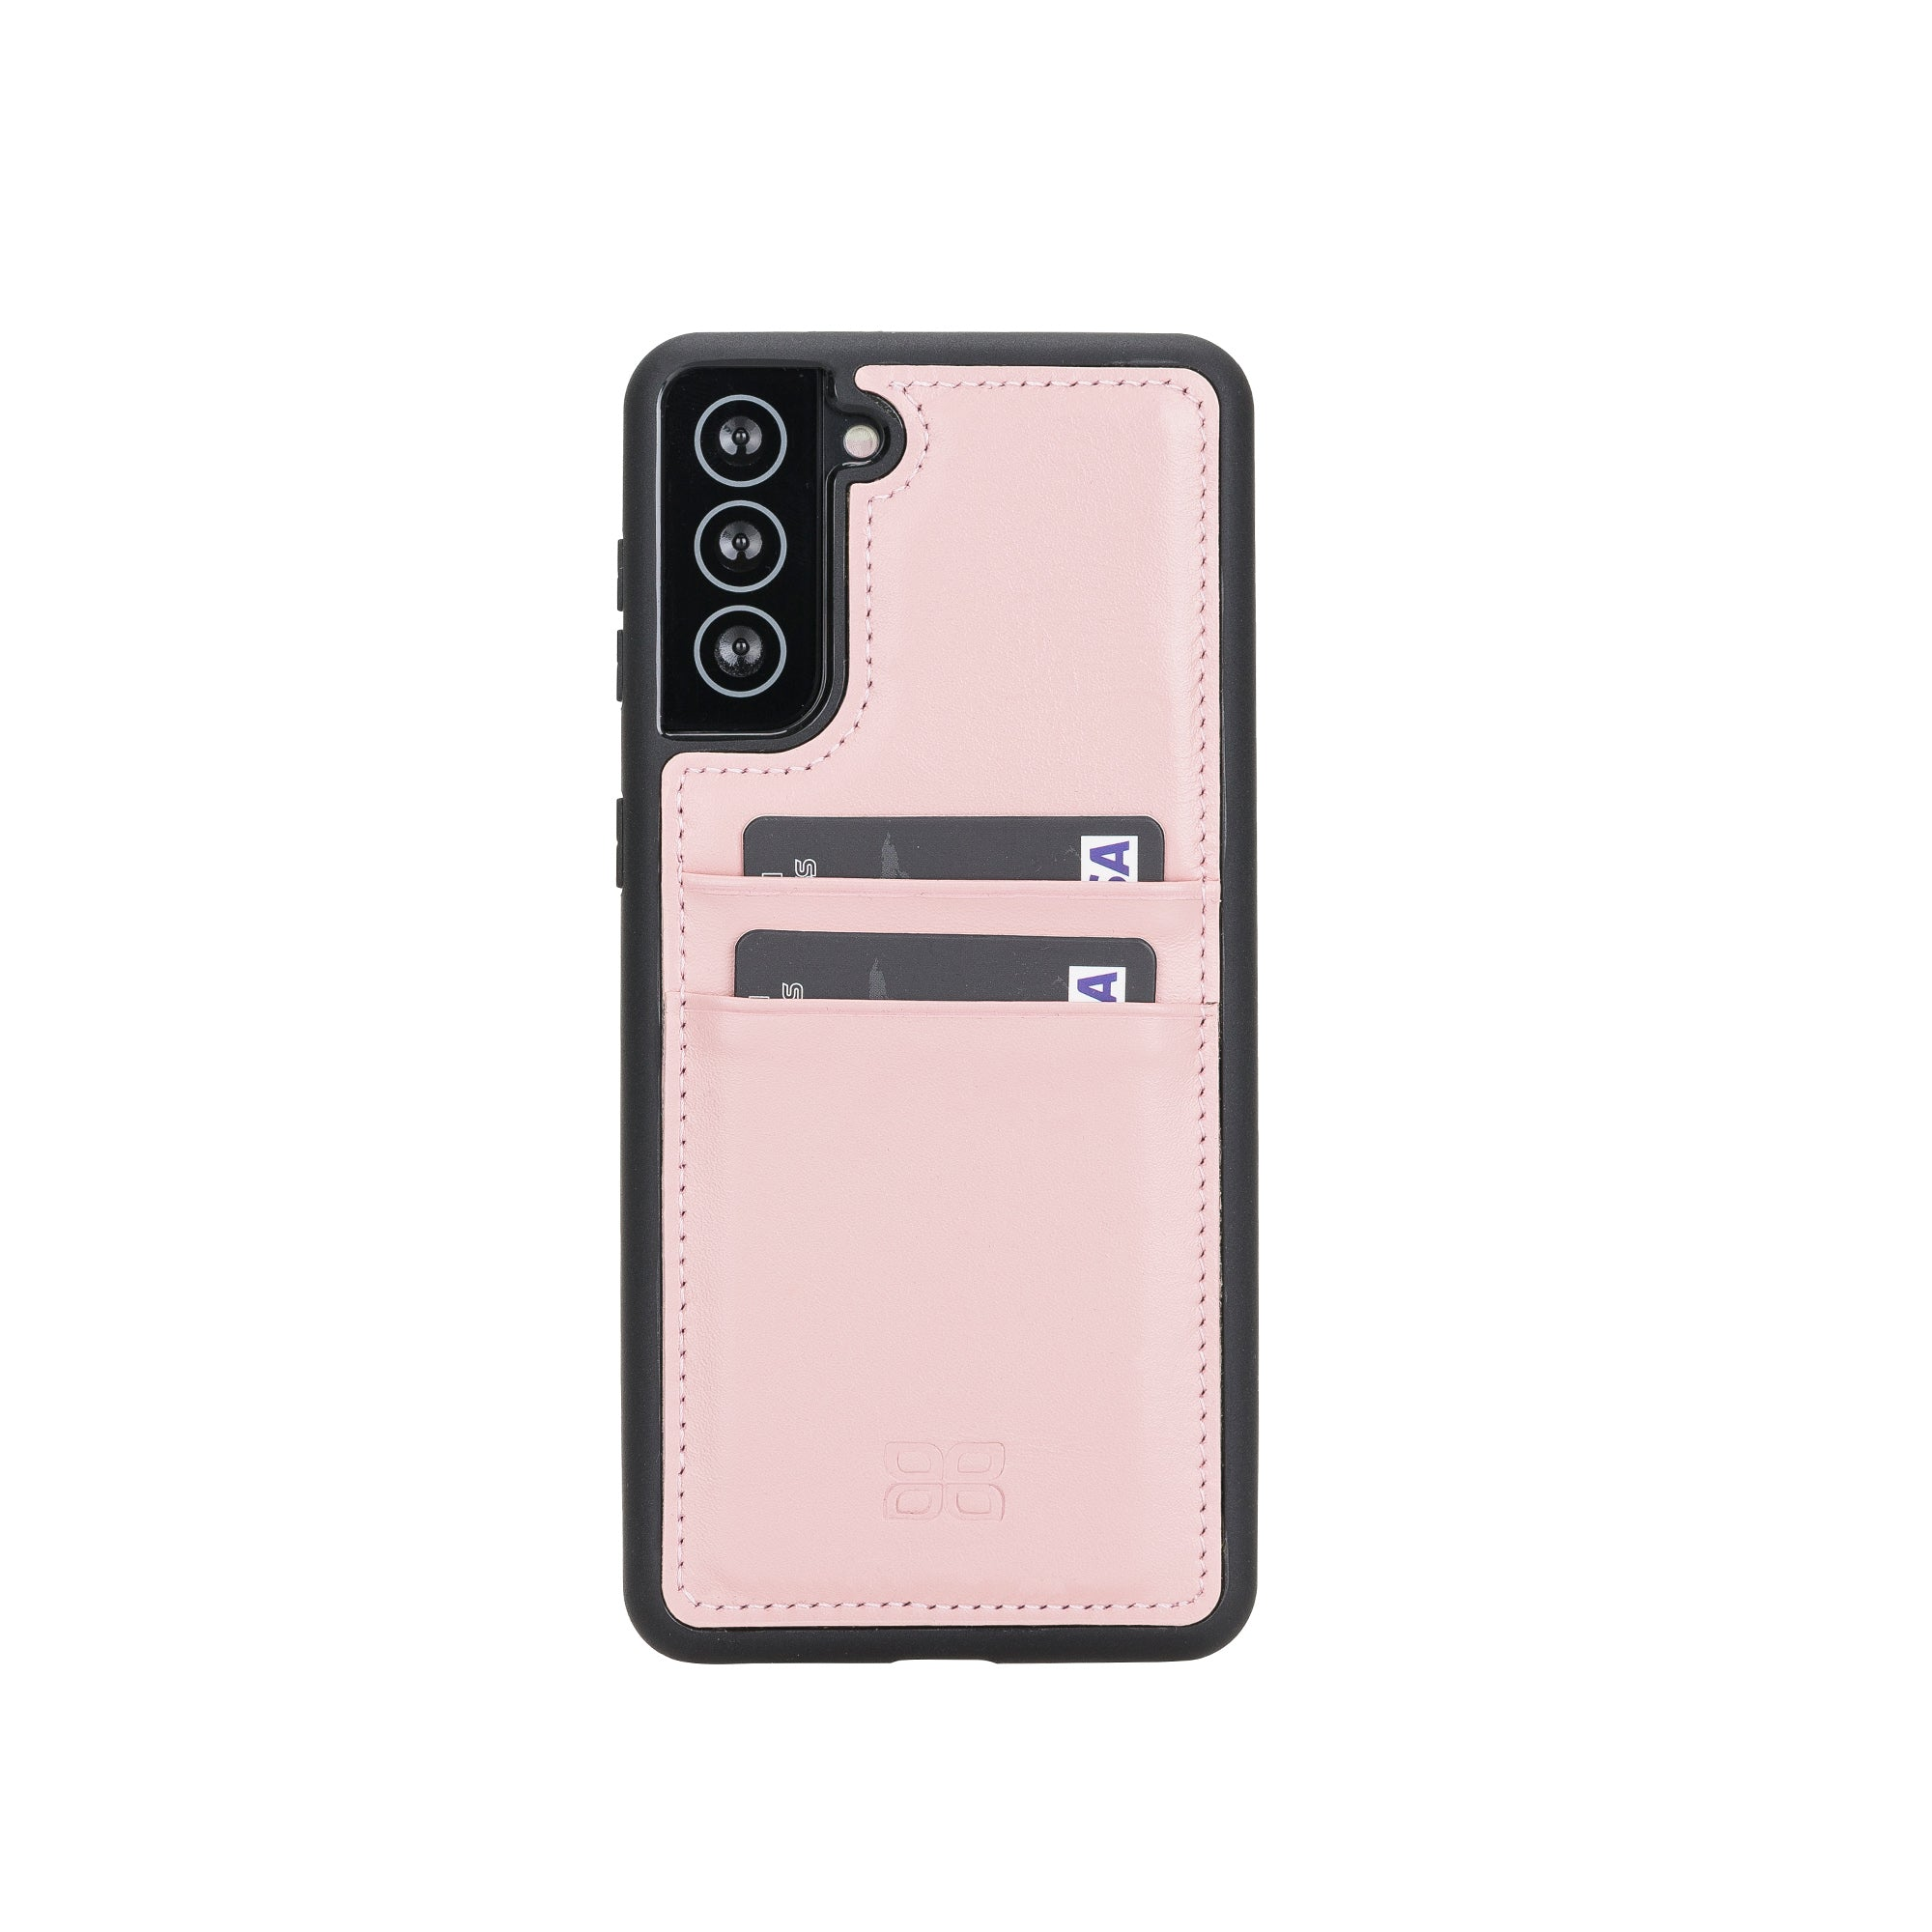 "Flex Cover Leather Back Case with Card Holder for Samsung Galaxy S21 5G (6.2"") - PINK - saracleather"